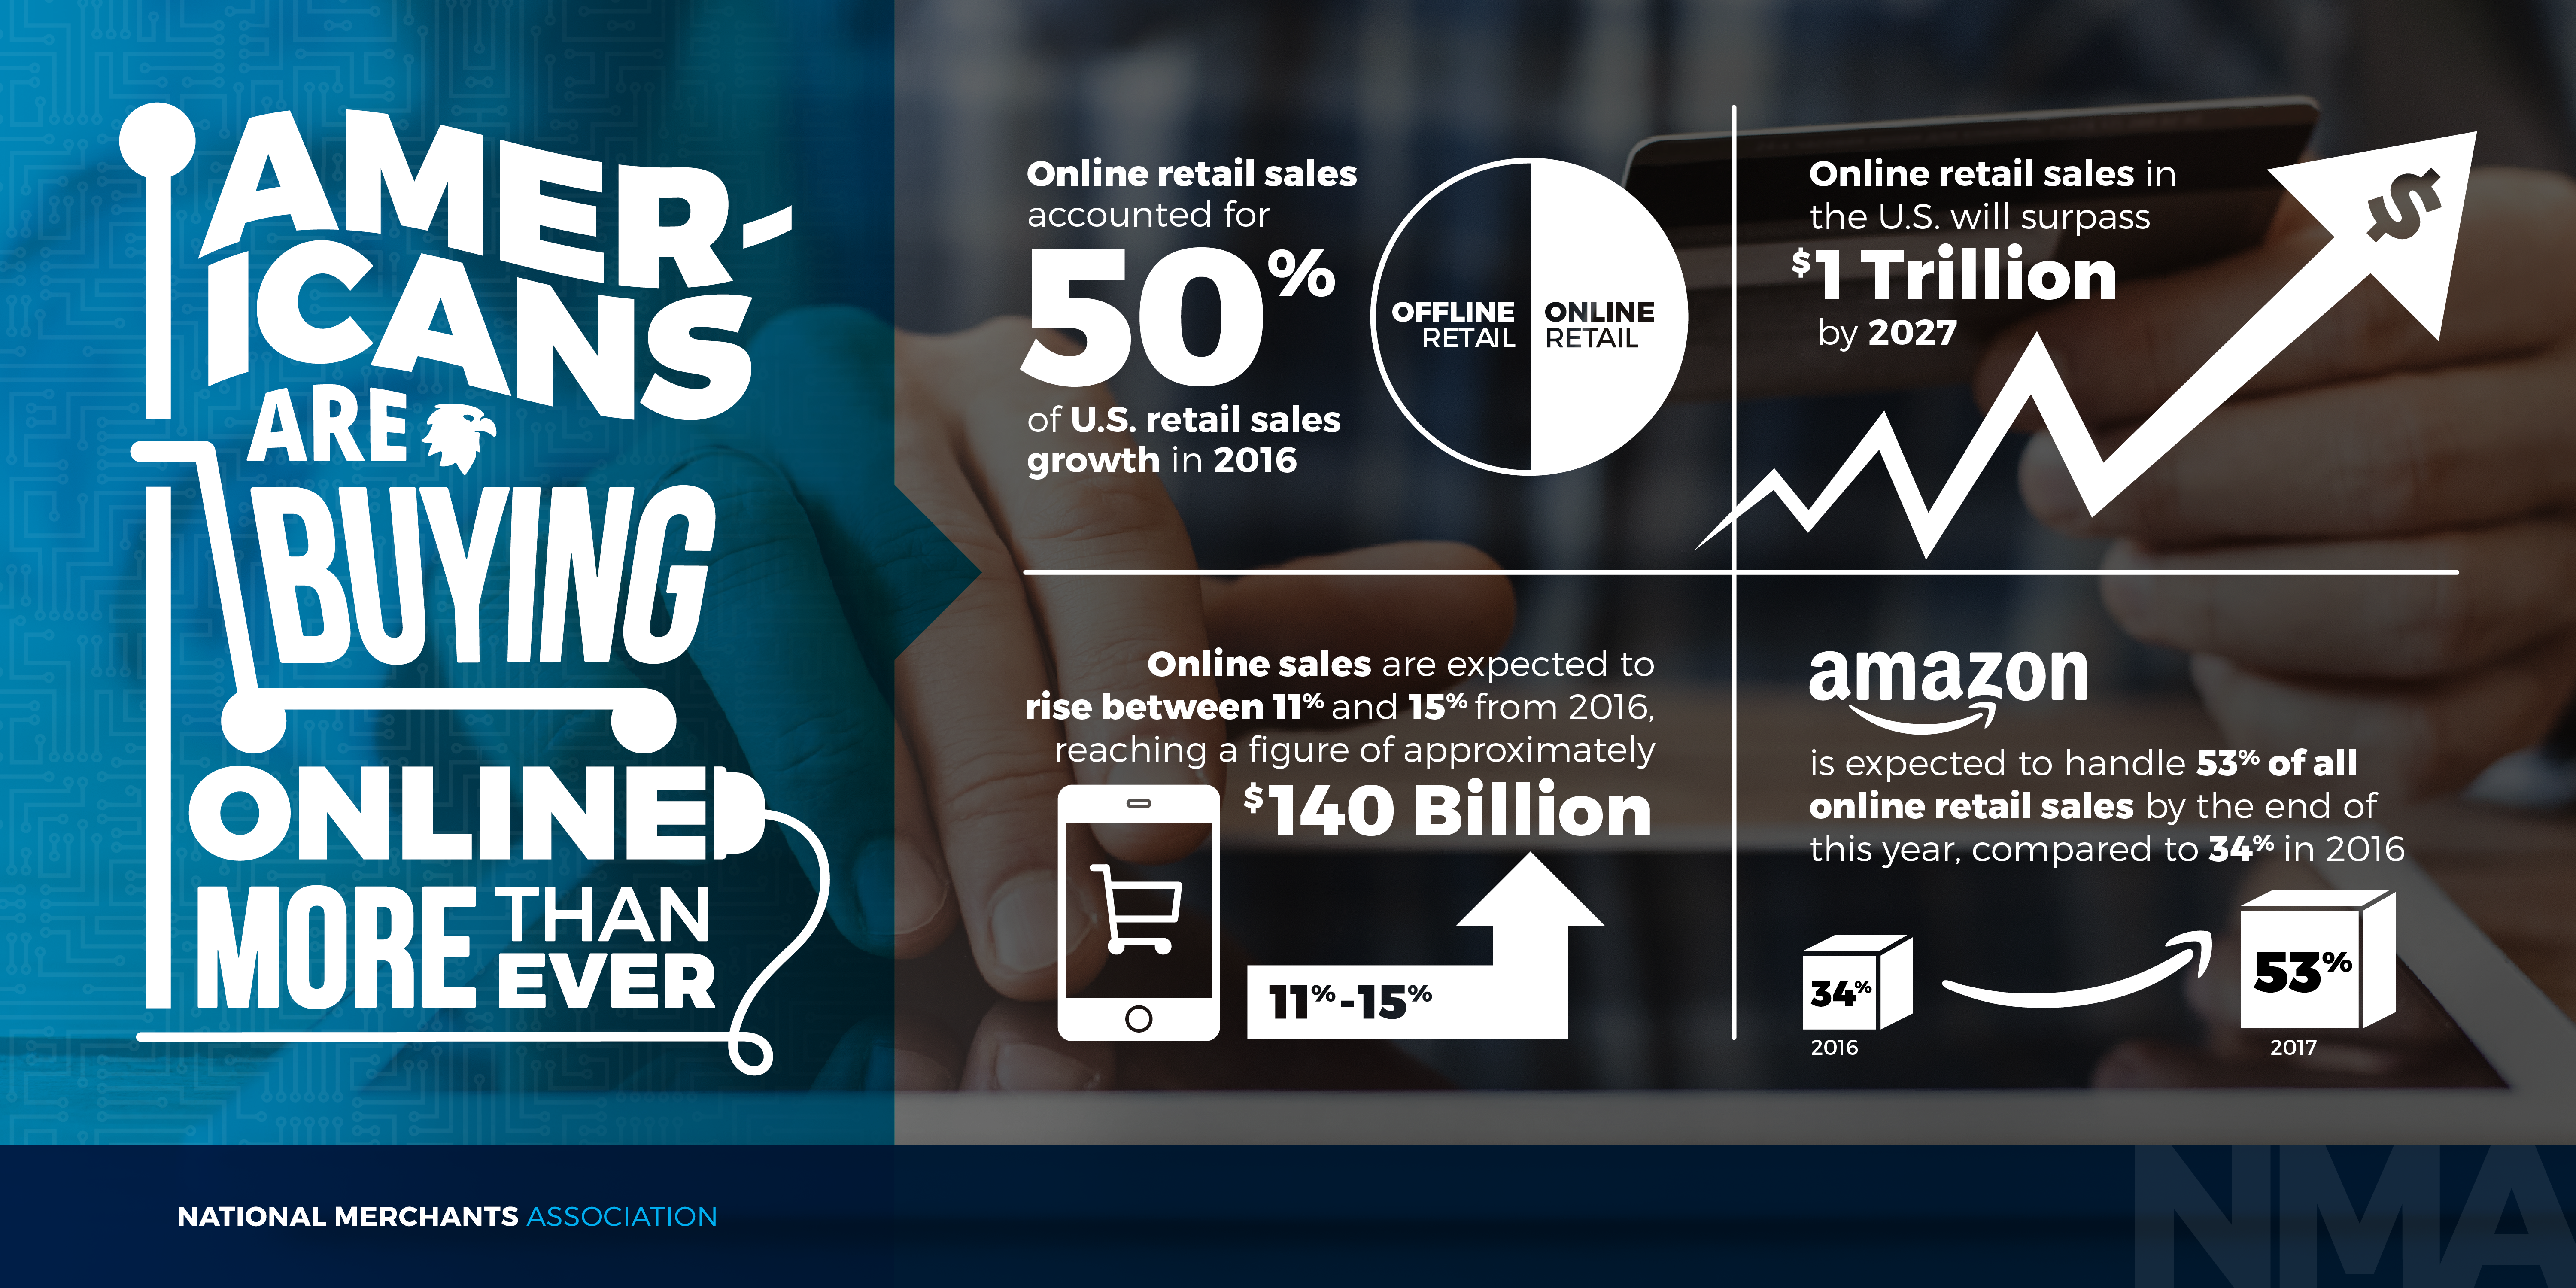 U.S. Online Retail Sales Growing Exponentially